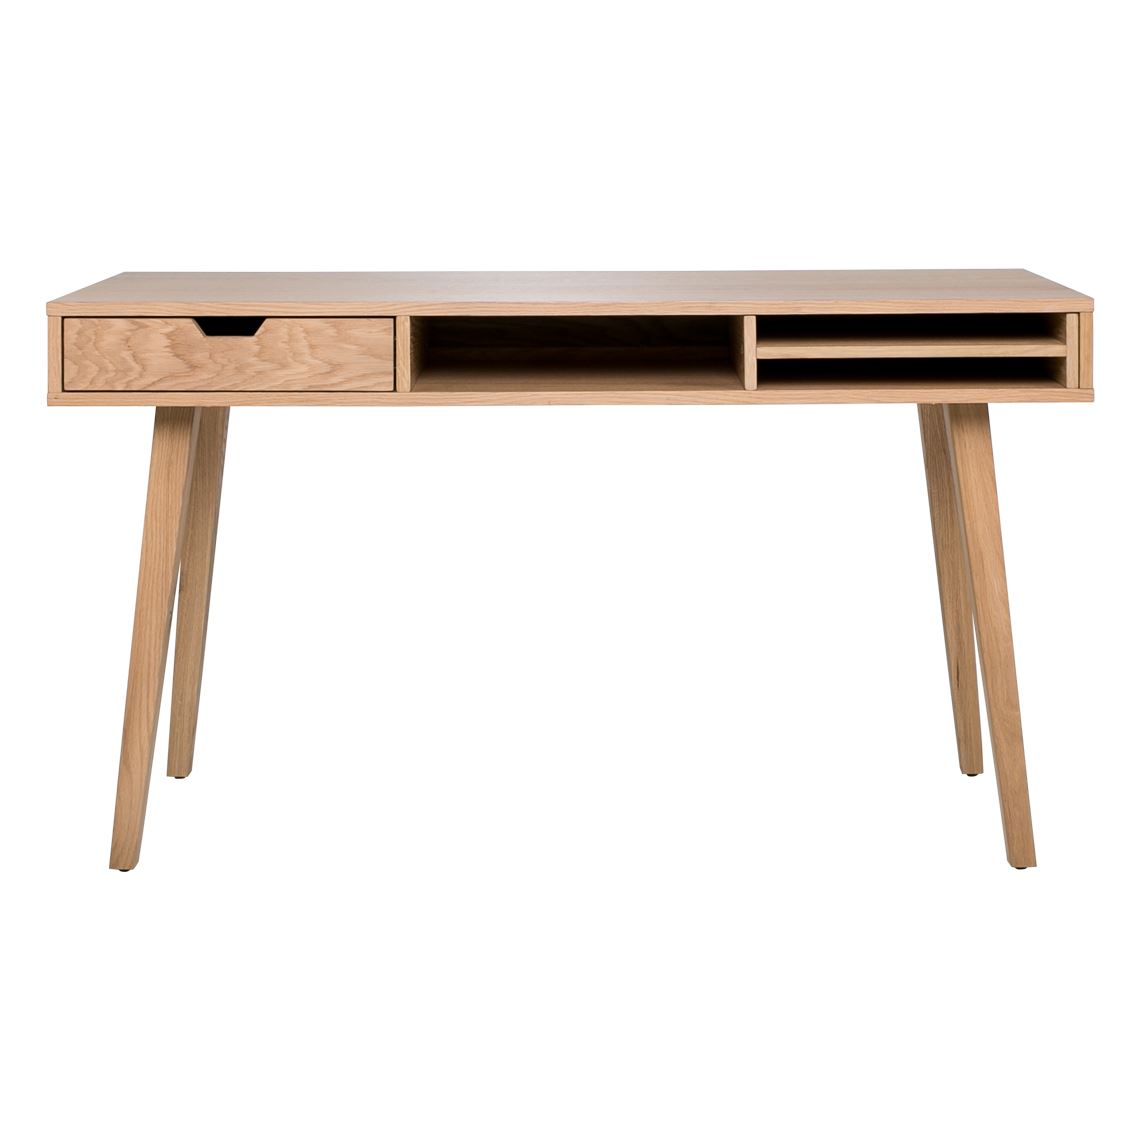 Hazel Desk Size W 140cm x D 50cm x H 77cm in Natural Oak/Wood/Oak Veneer Freedom by Freedom, a Desks for sale on Style Sourcebook